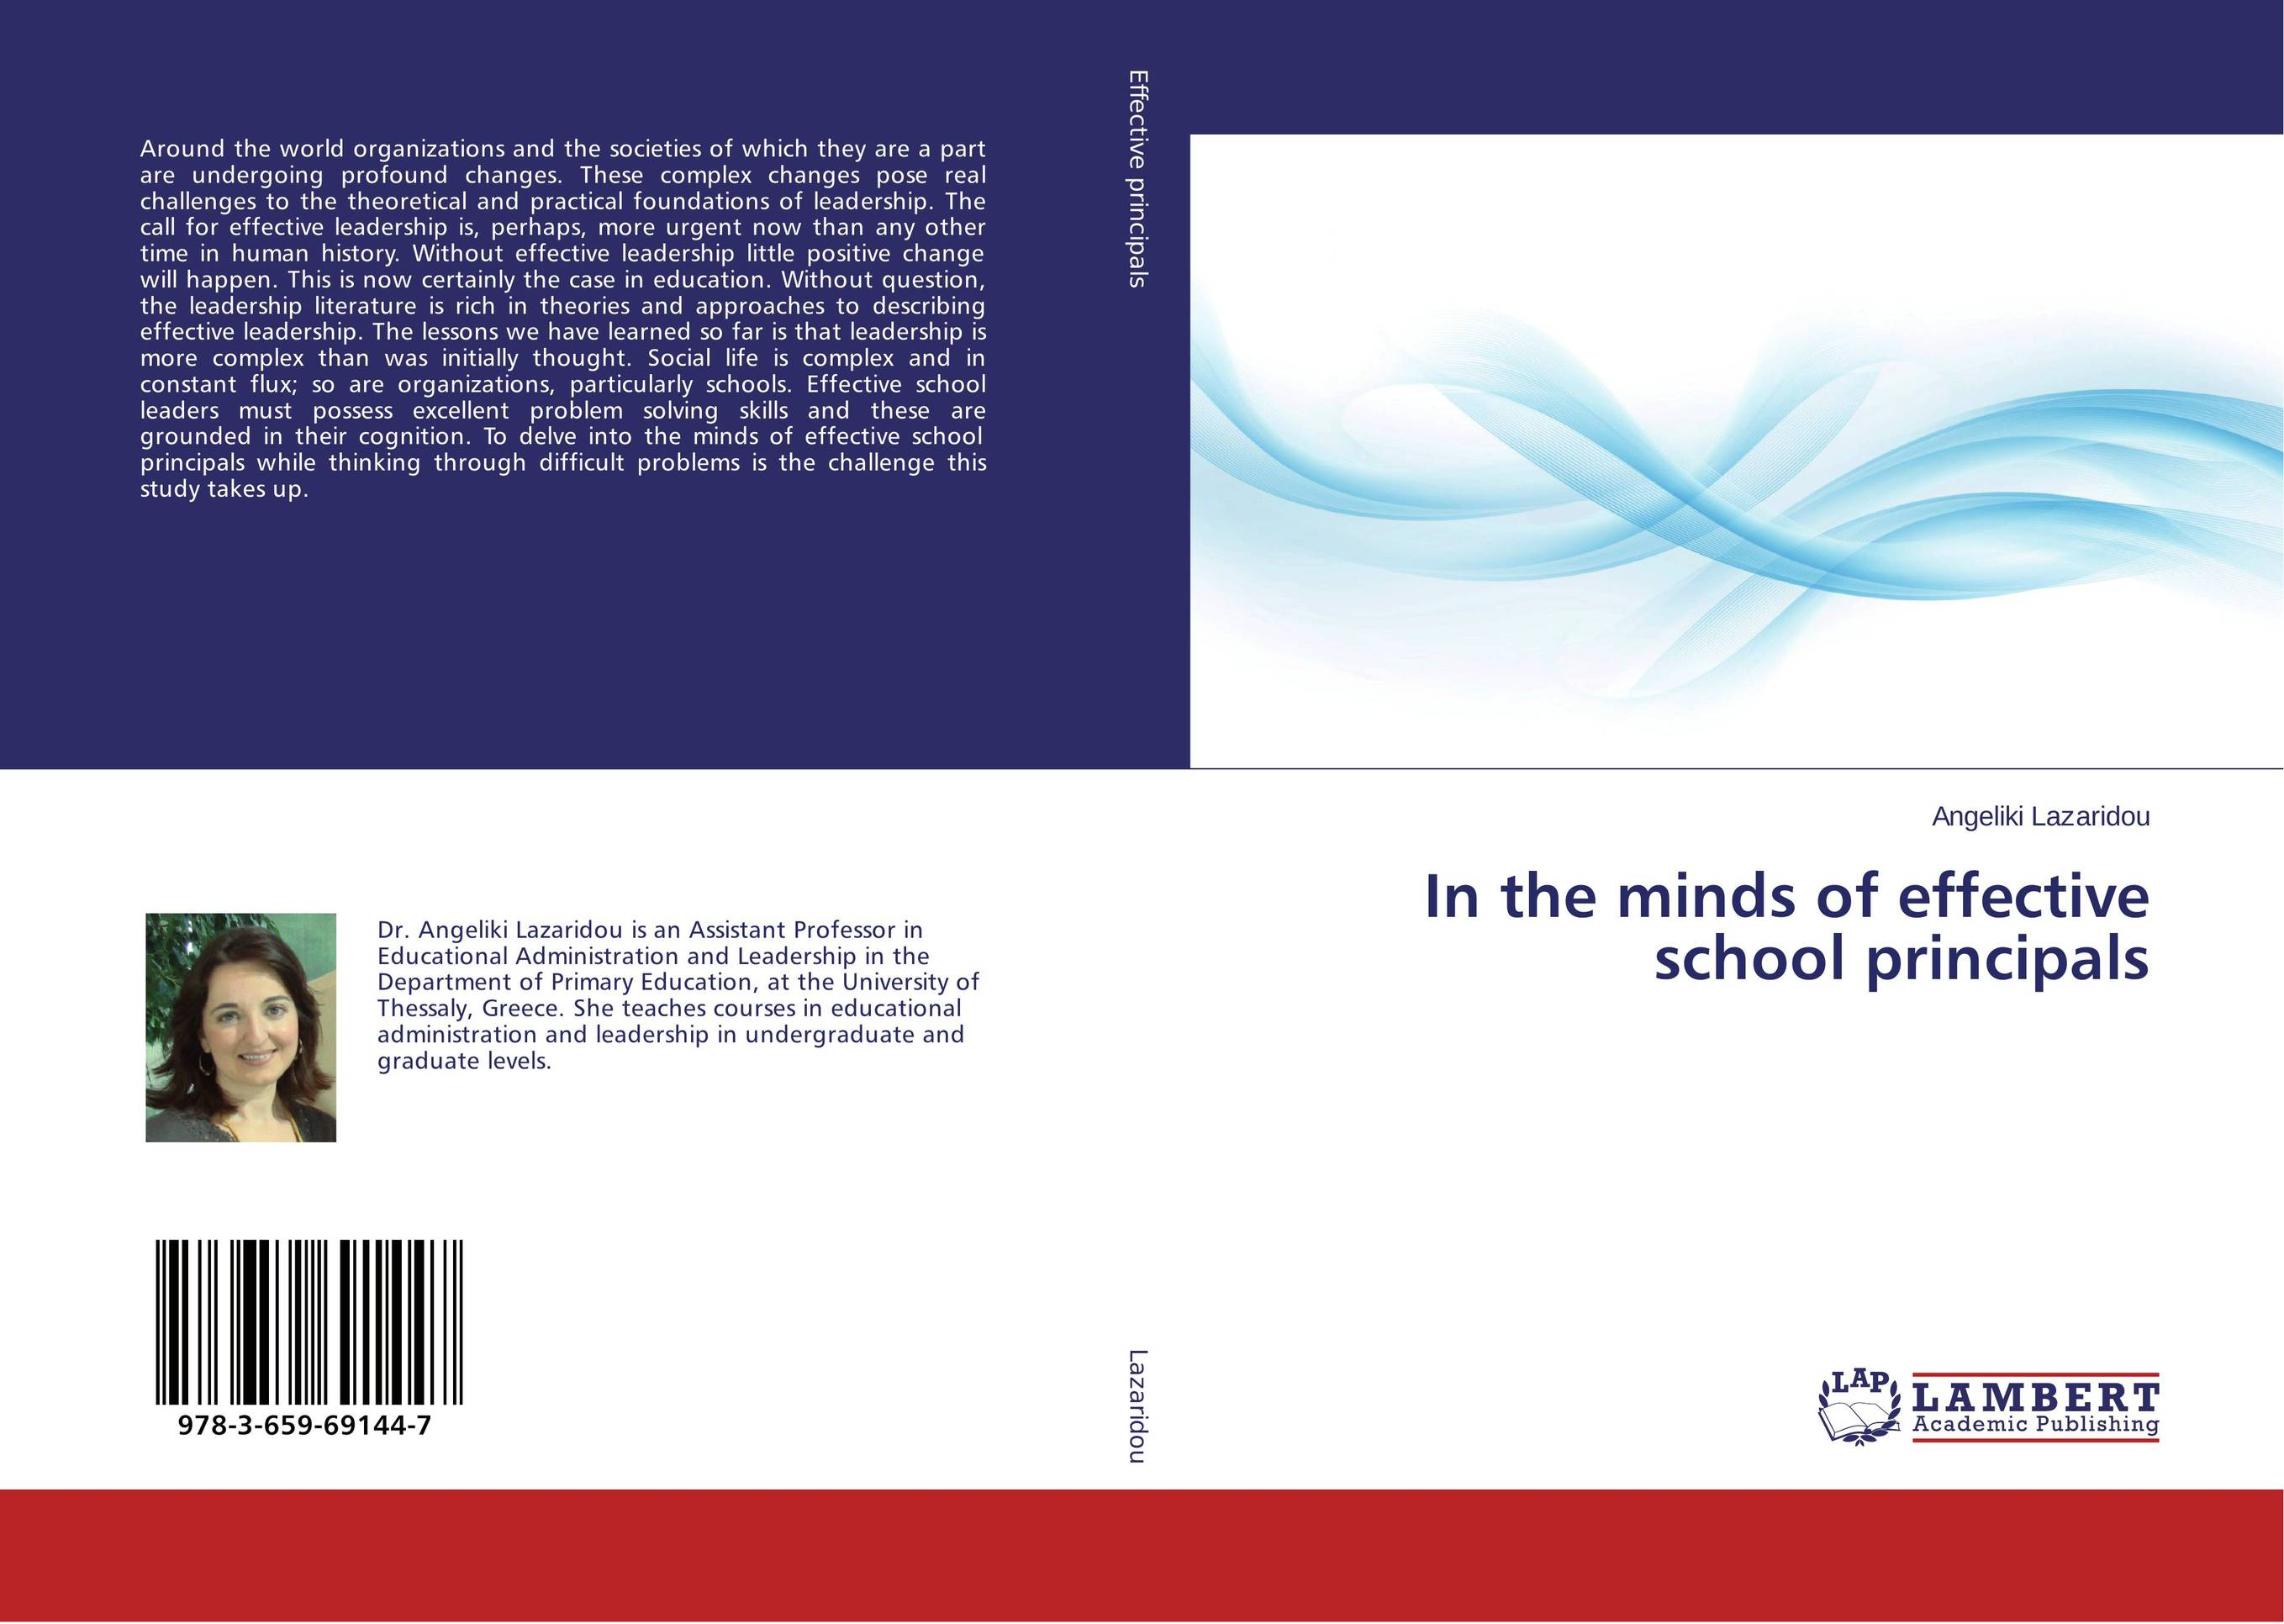 In the minds of effective school principals fiedler new approaches to effective leadership cognitive resources